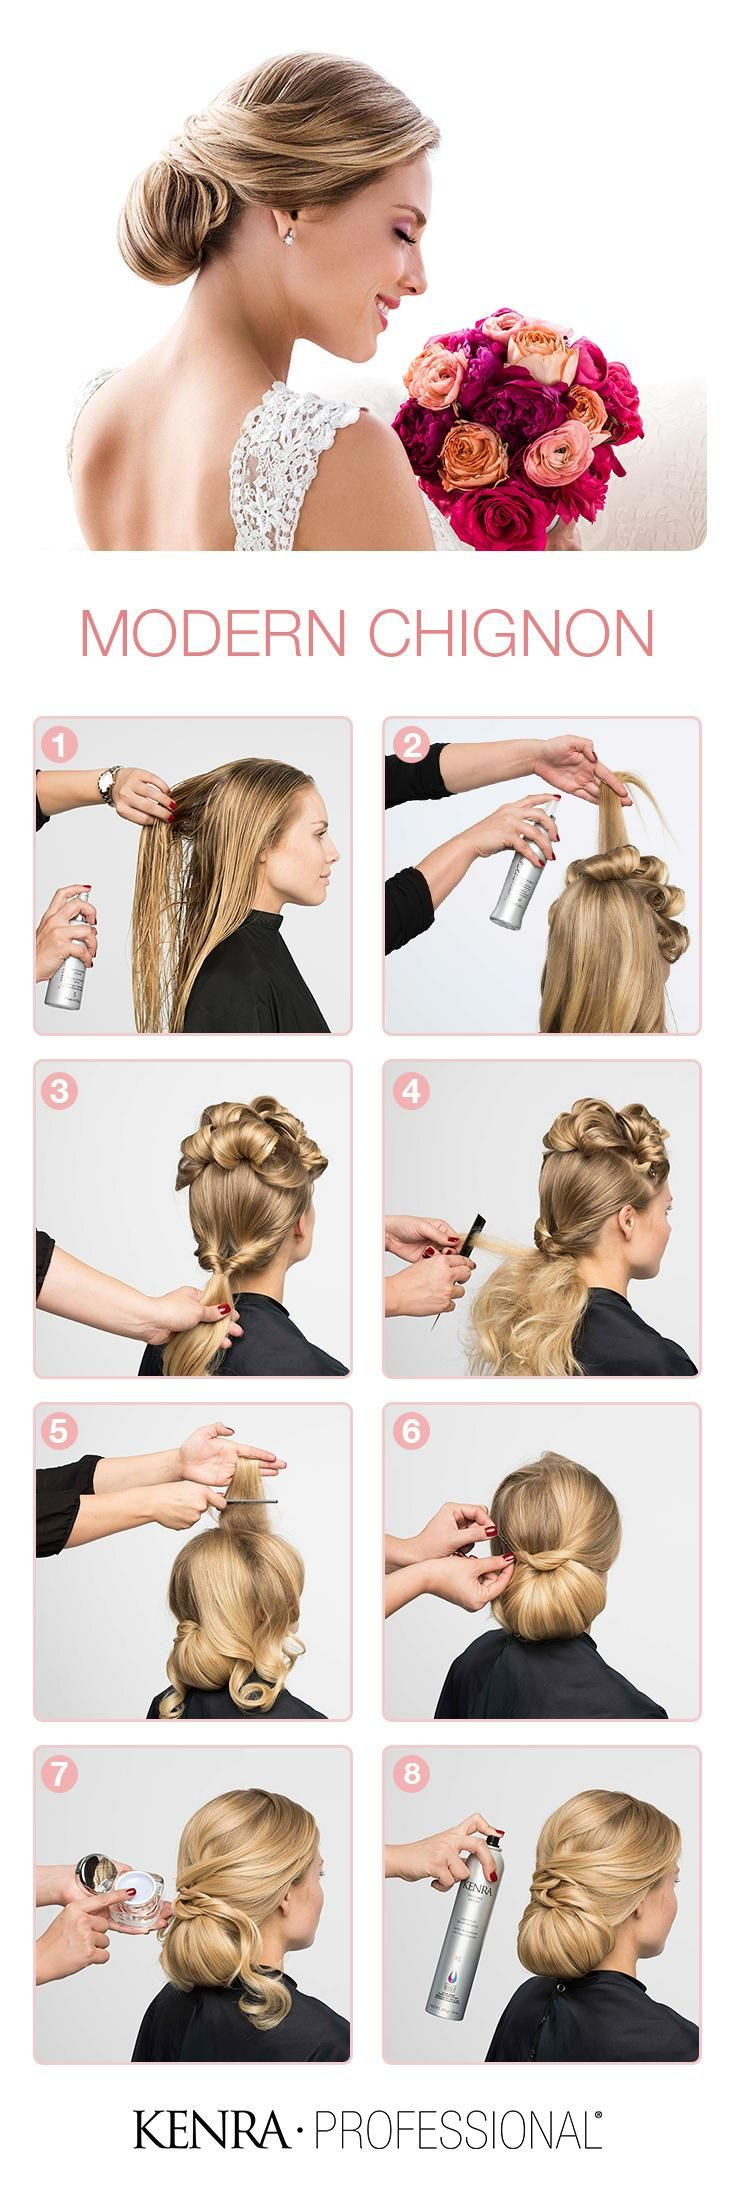 How To | Modern Chignon Wedding Updo | Hairstyle Tutorials ...